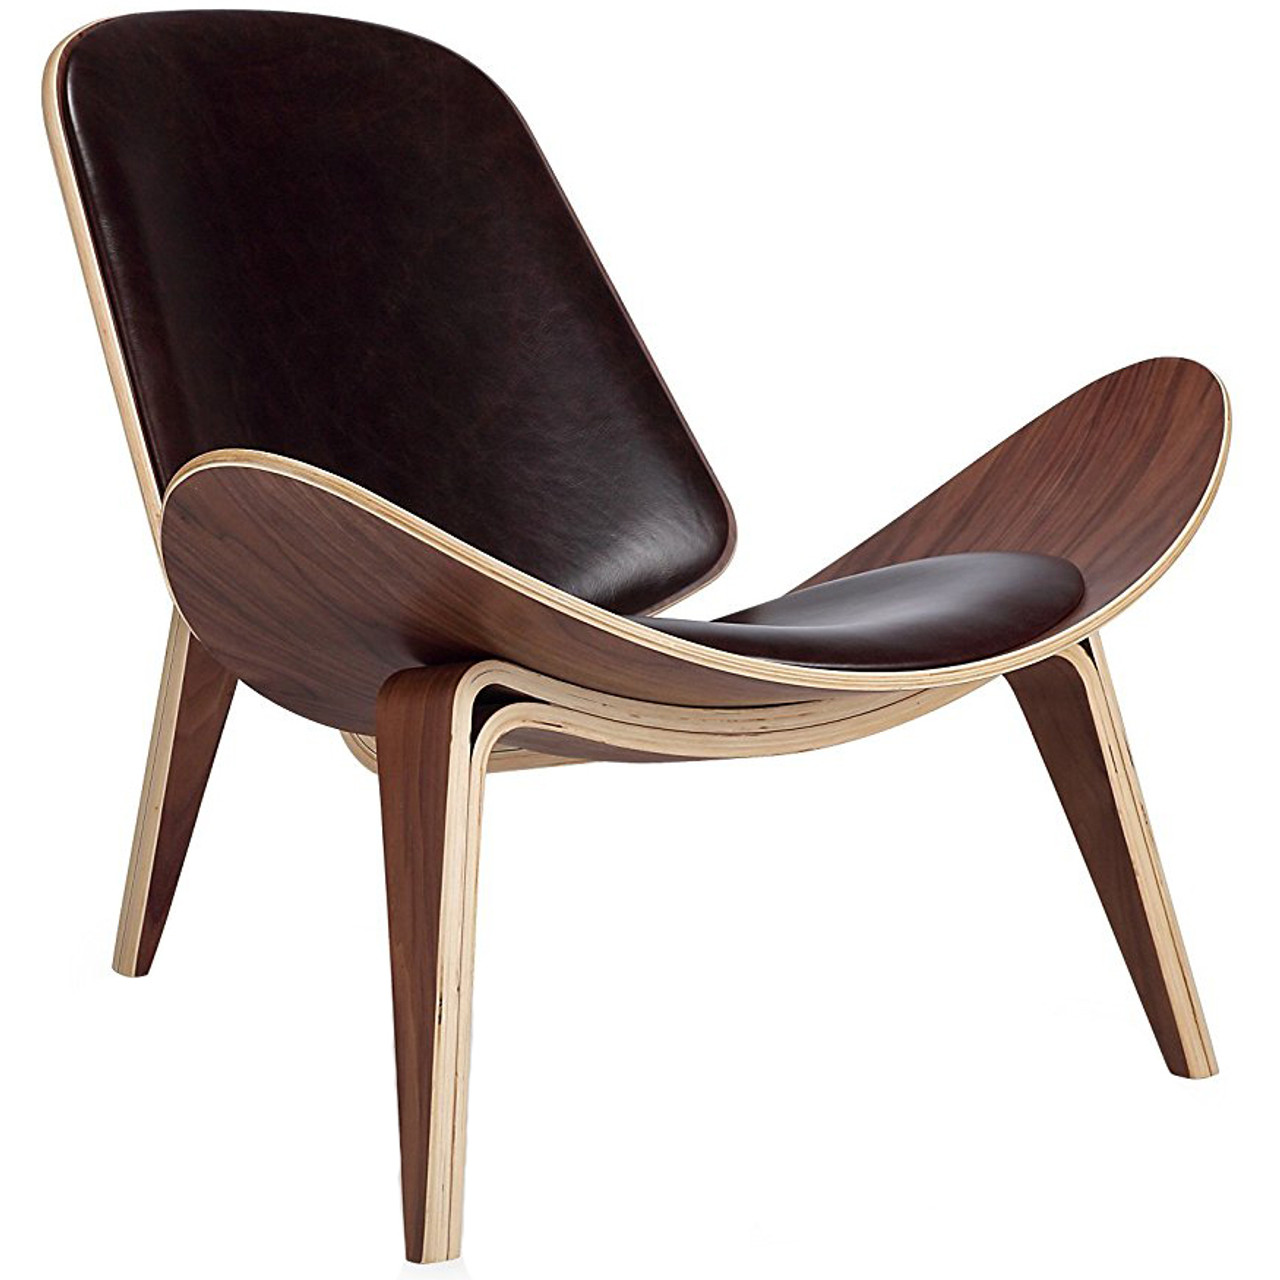 Genial Designer Style Modern Lounge Contemporary Hardwood Chair